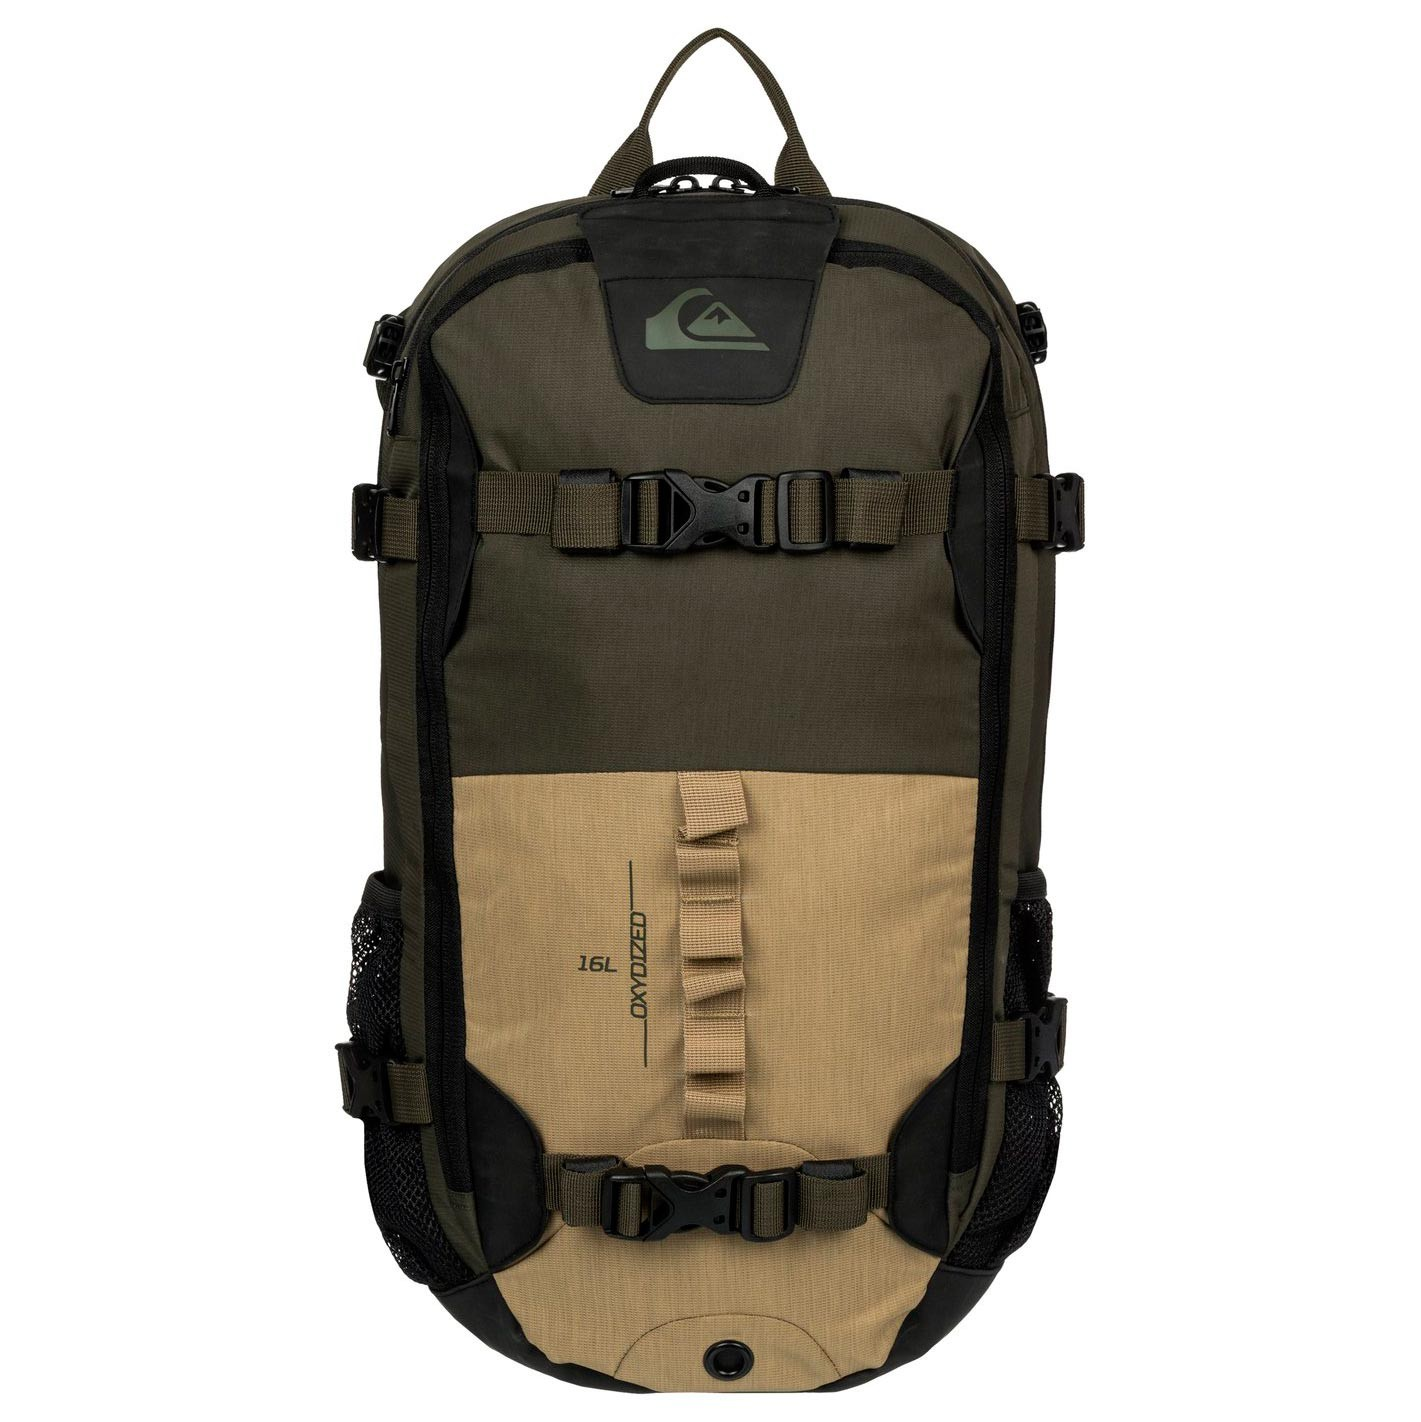 f3c602f286 Snowboard backpack Quiksilver Oxydized Tailored forest night ...